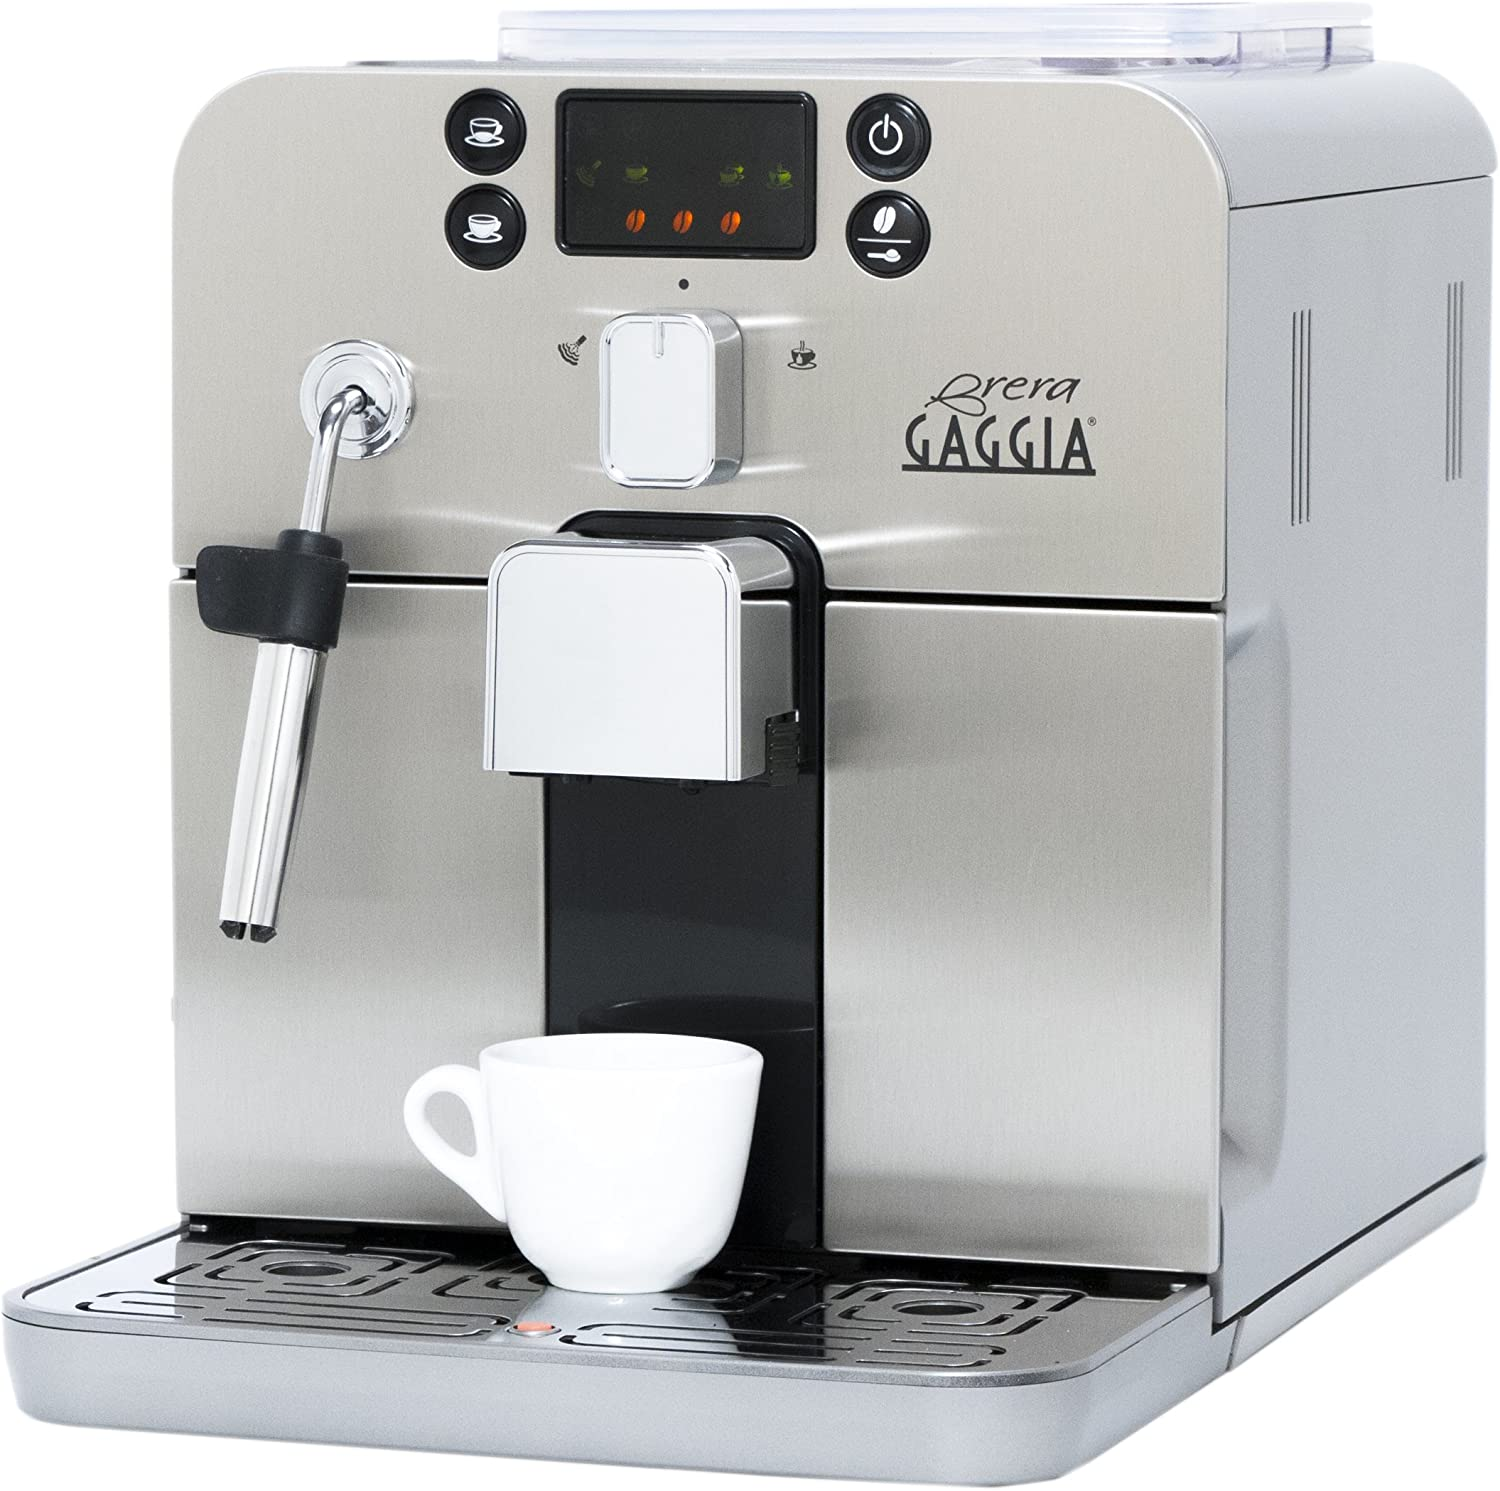 Gaggia Brera Super Automatic Espresso Machine Amazon